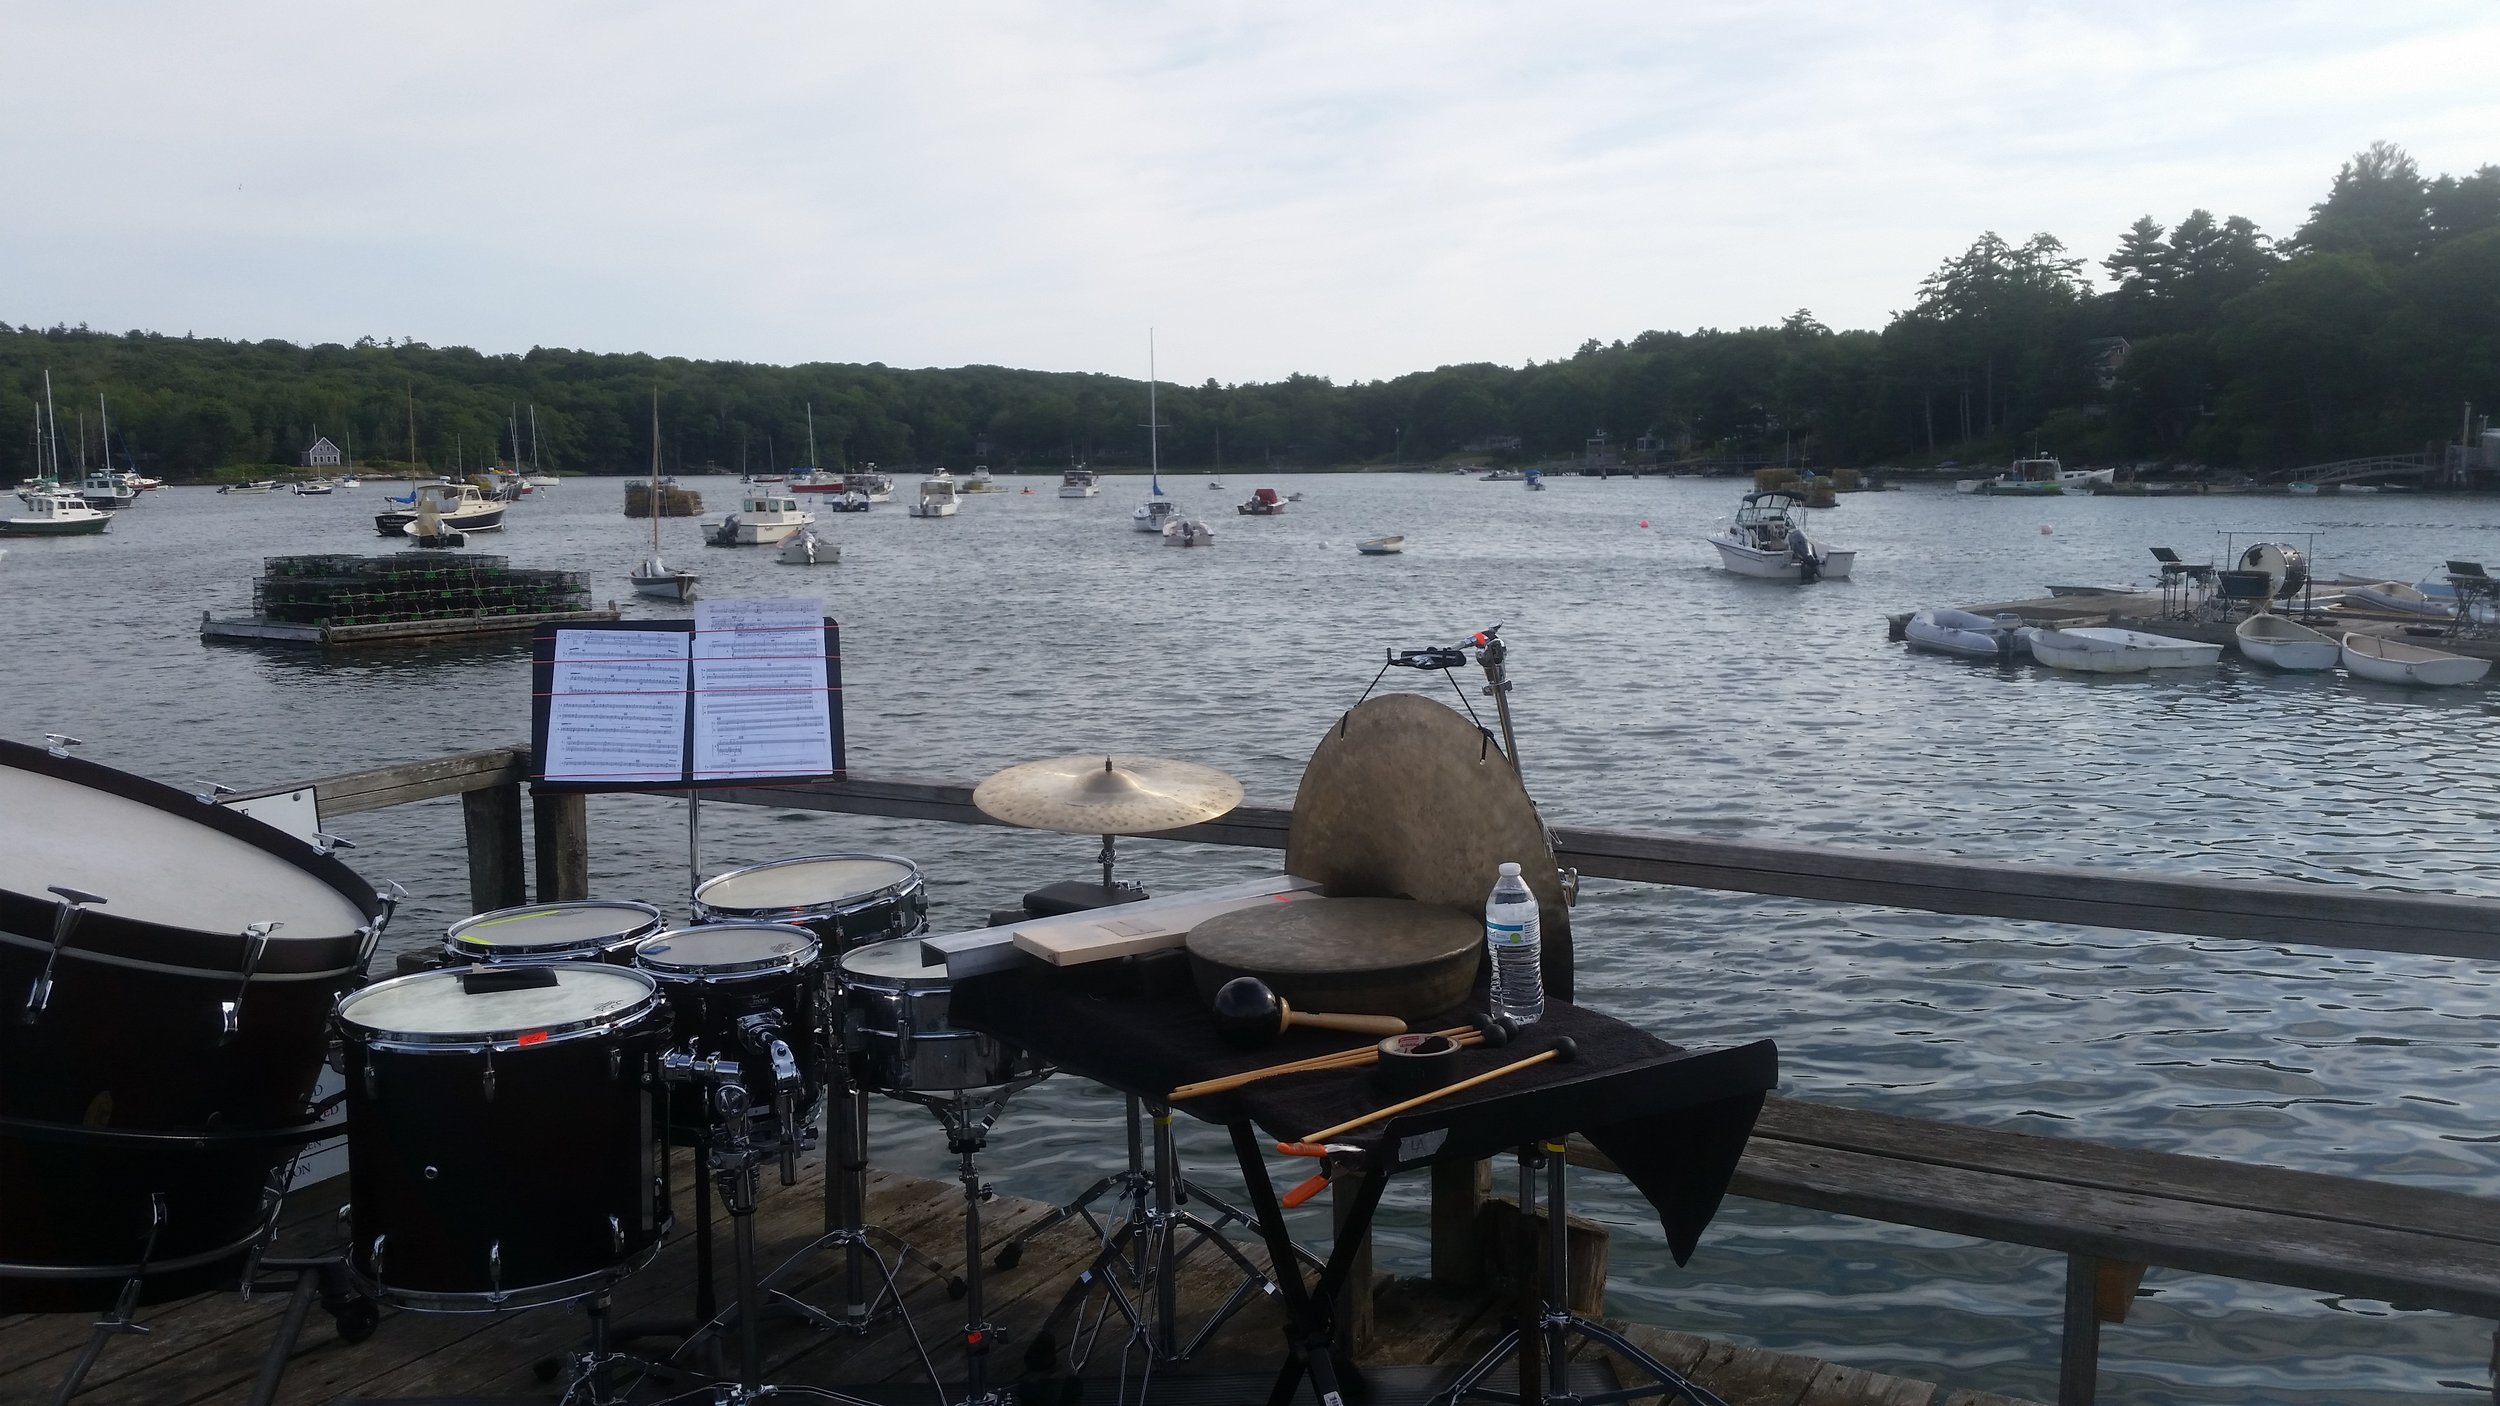 Percussion at Round Pond for a performance of Xenakis' Persephassa (2017). Photo by Peter Felsenthal.